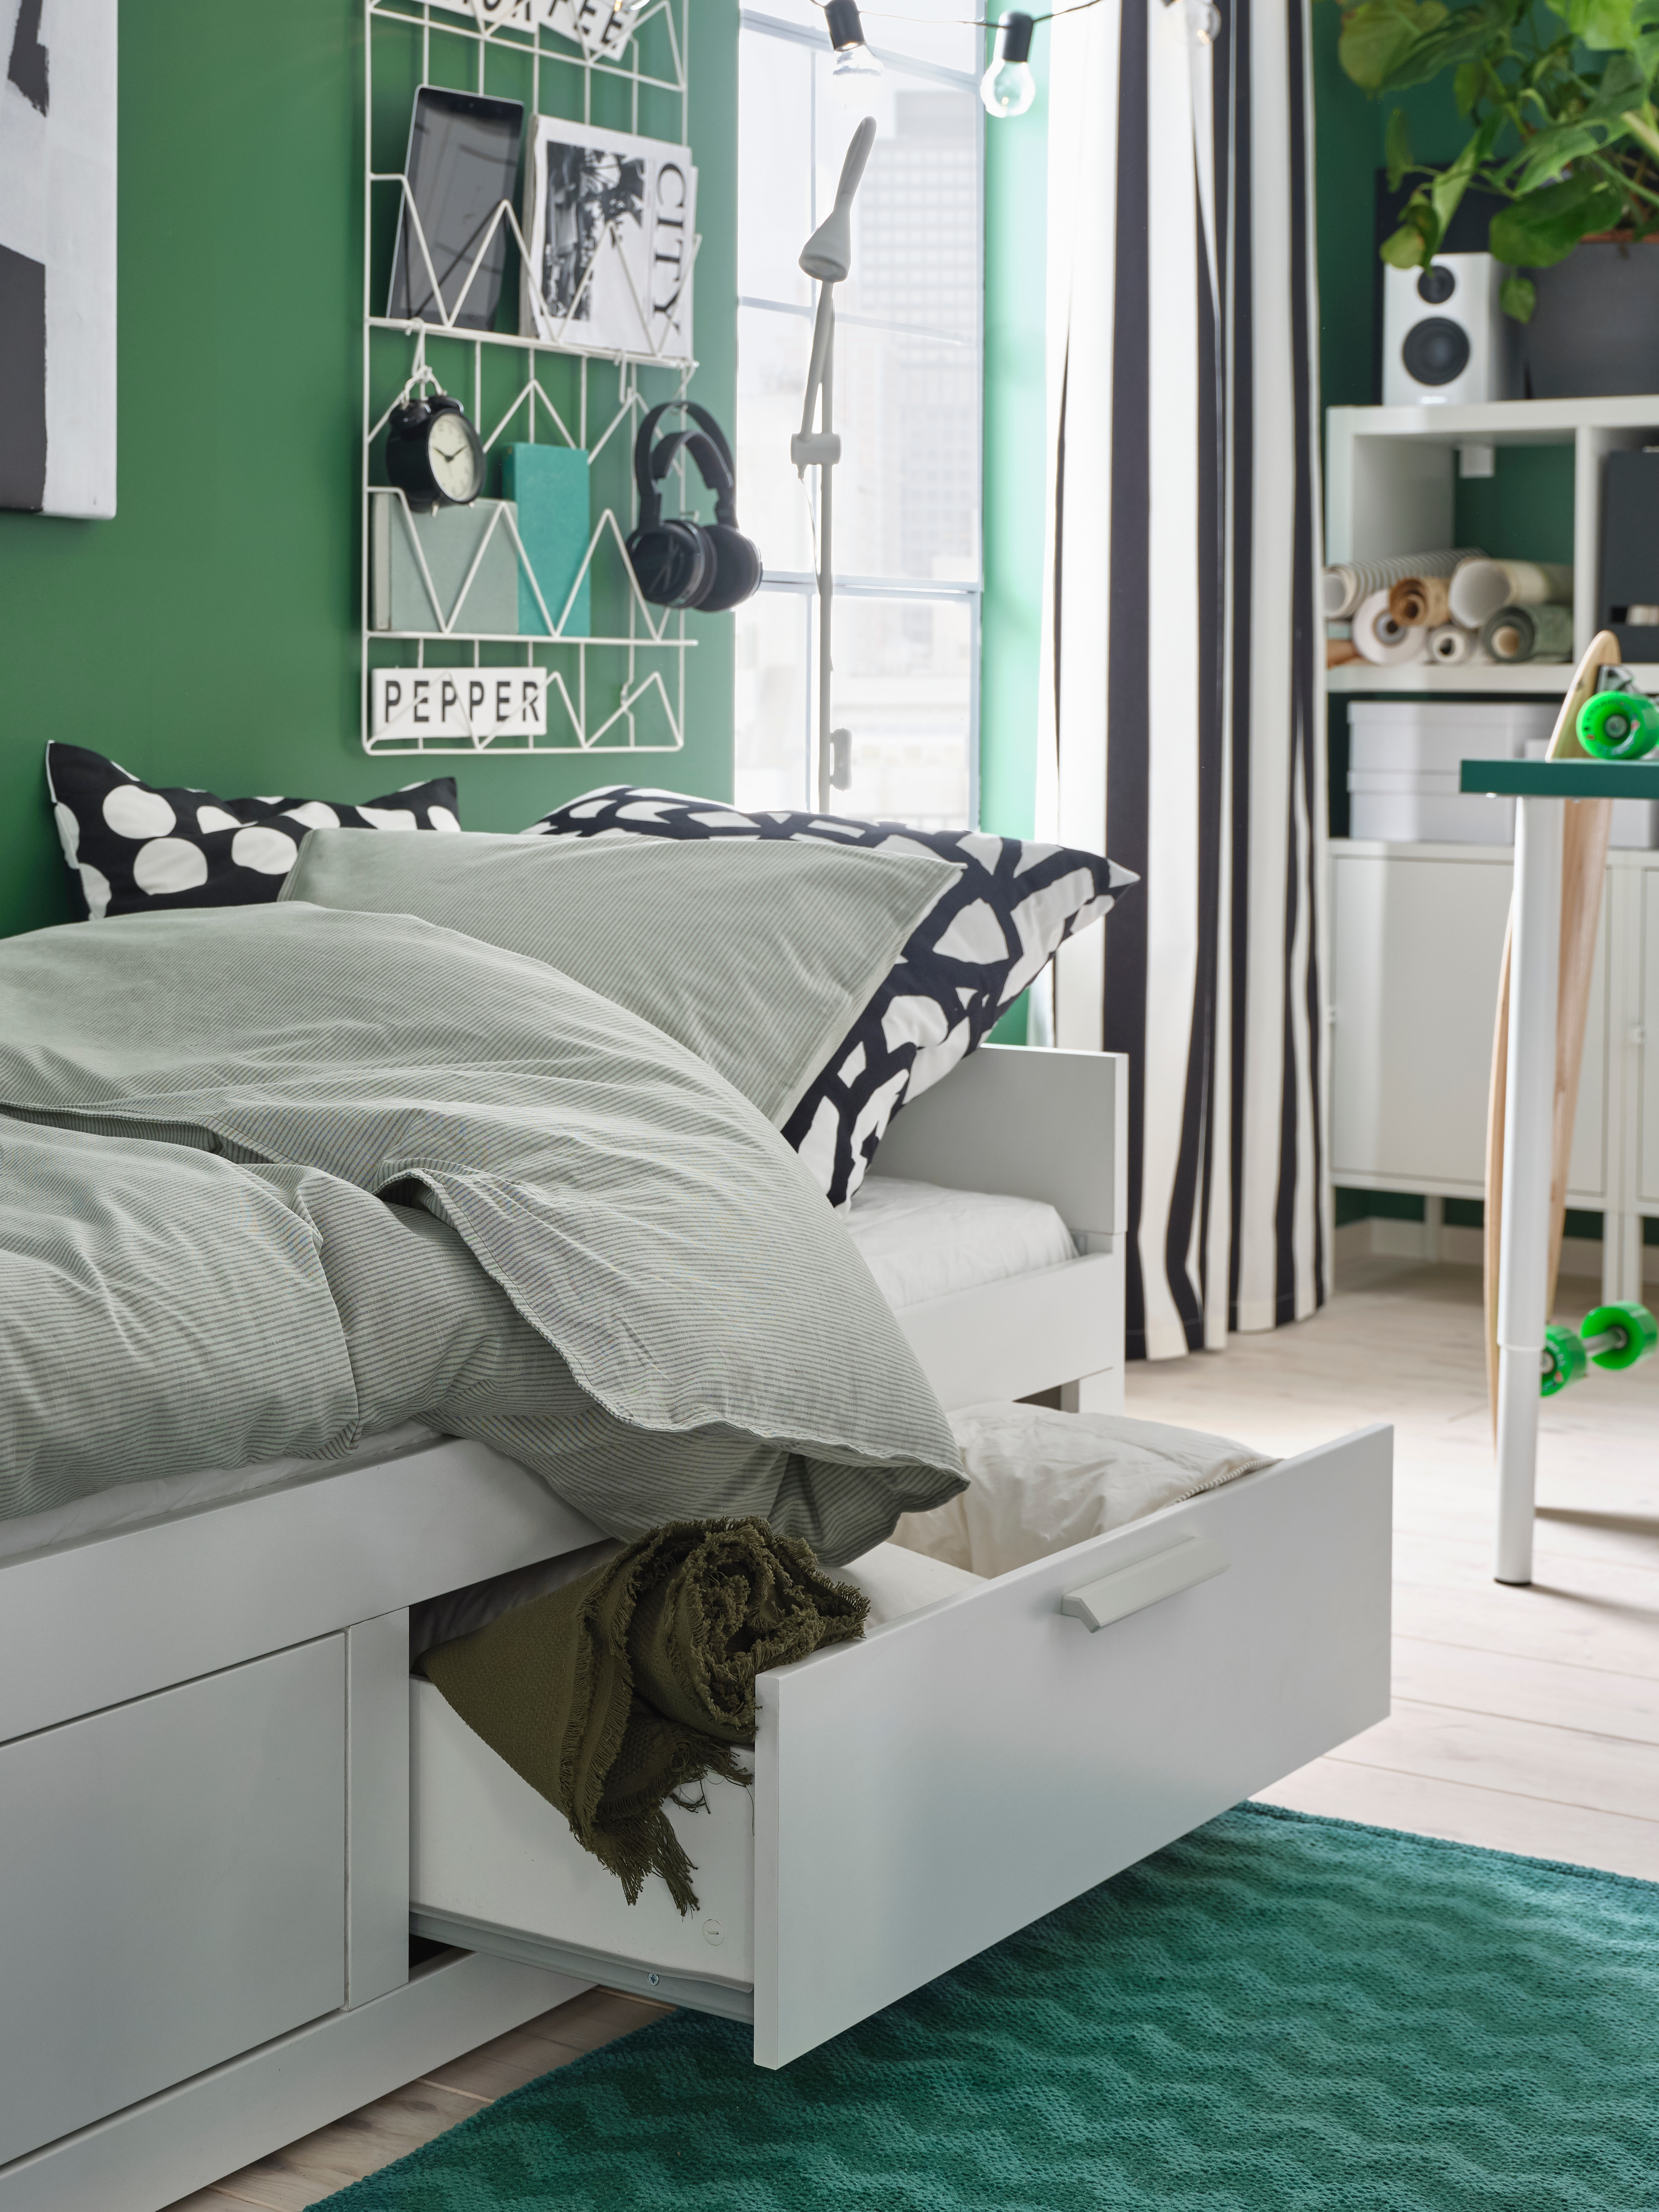 Bedroom with green walls, green rug, white day bed with two drawers, white storage unit and floor lamp.